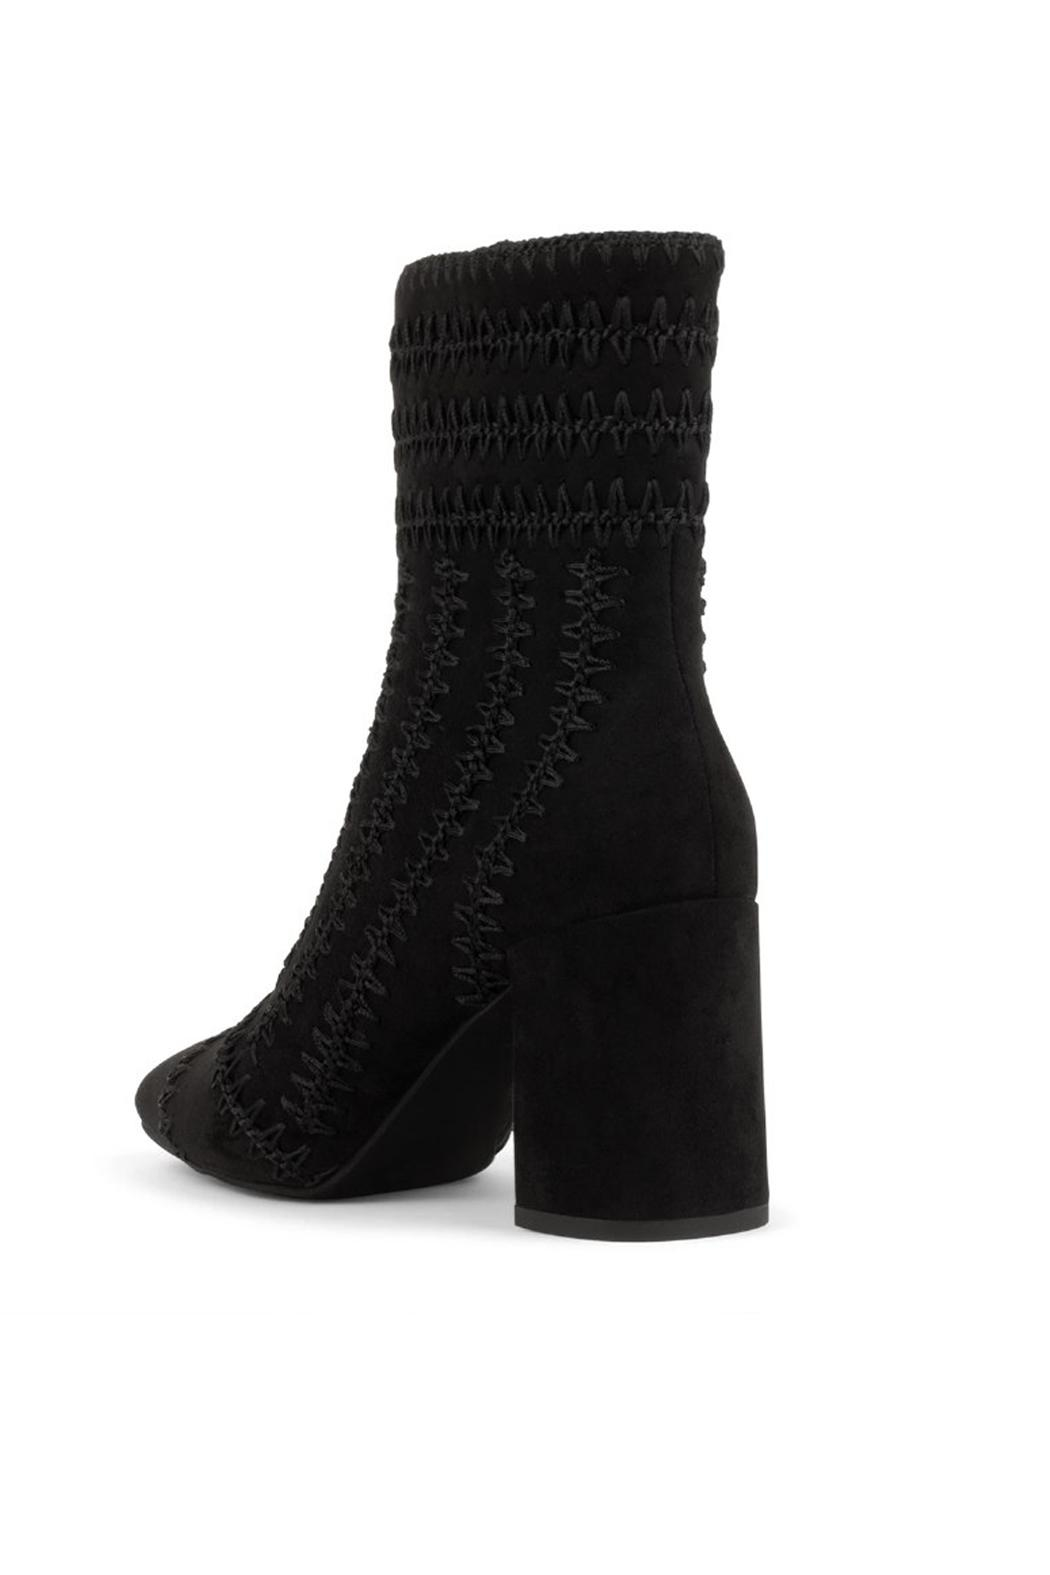 Jeffrey Campbell Black Suede Bootie - Front Full Image